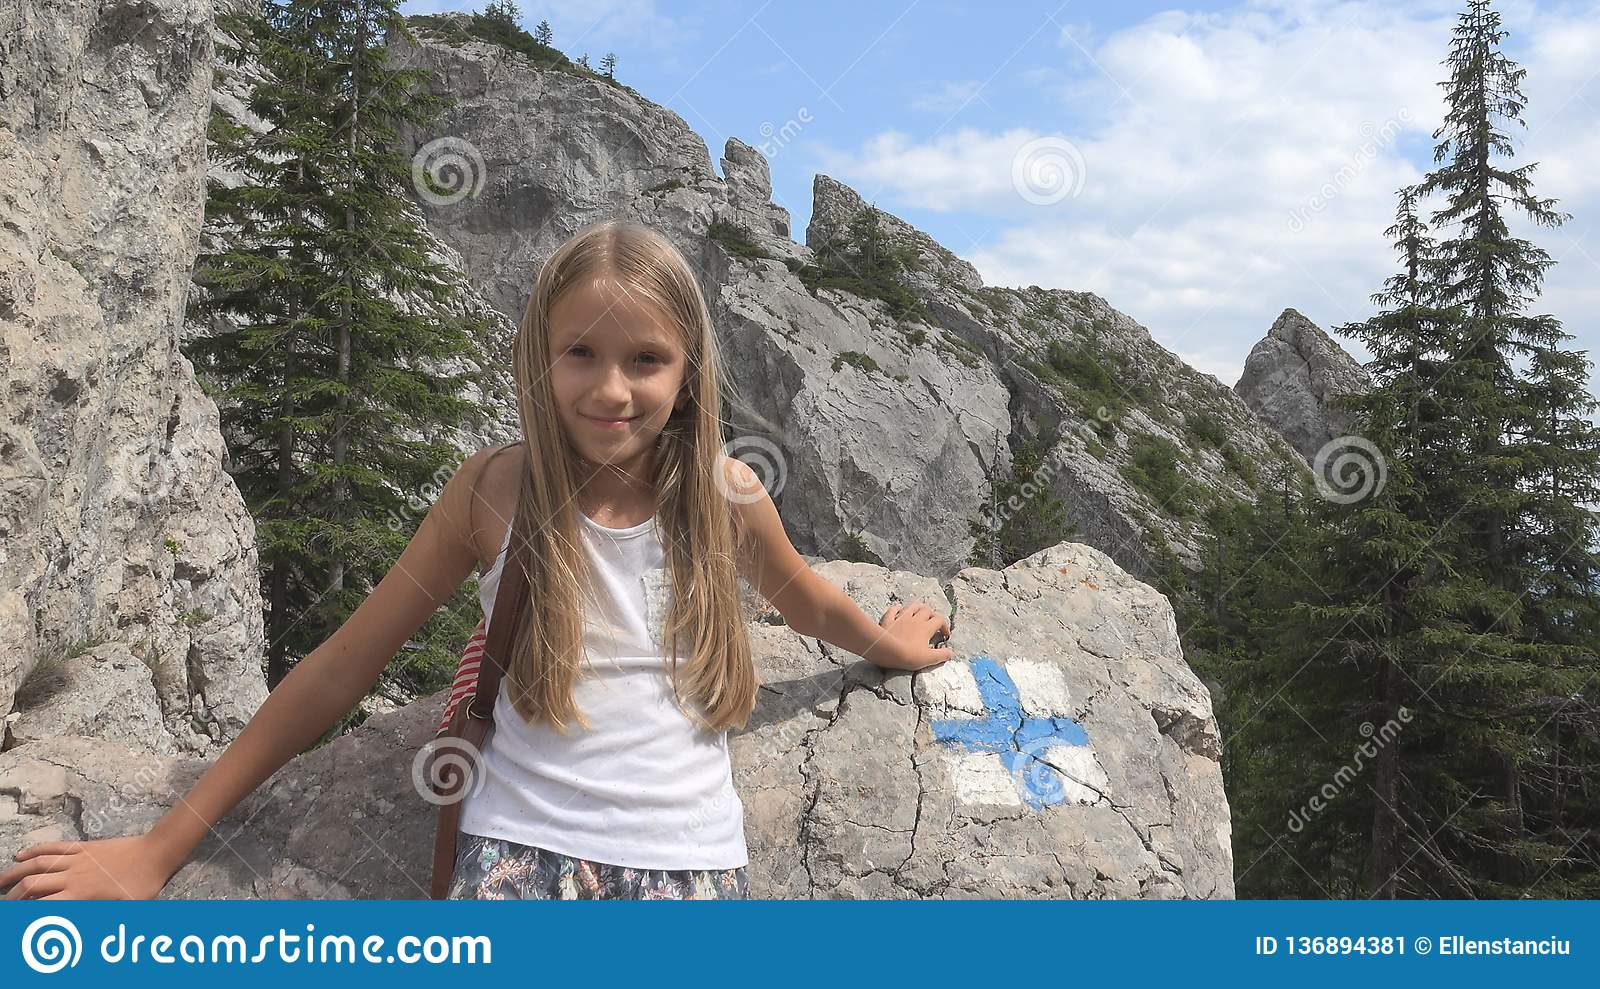 Child in Camping, Trail Signs in Mountains, Tourist Girl, Forest Trip Excursion